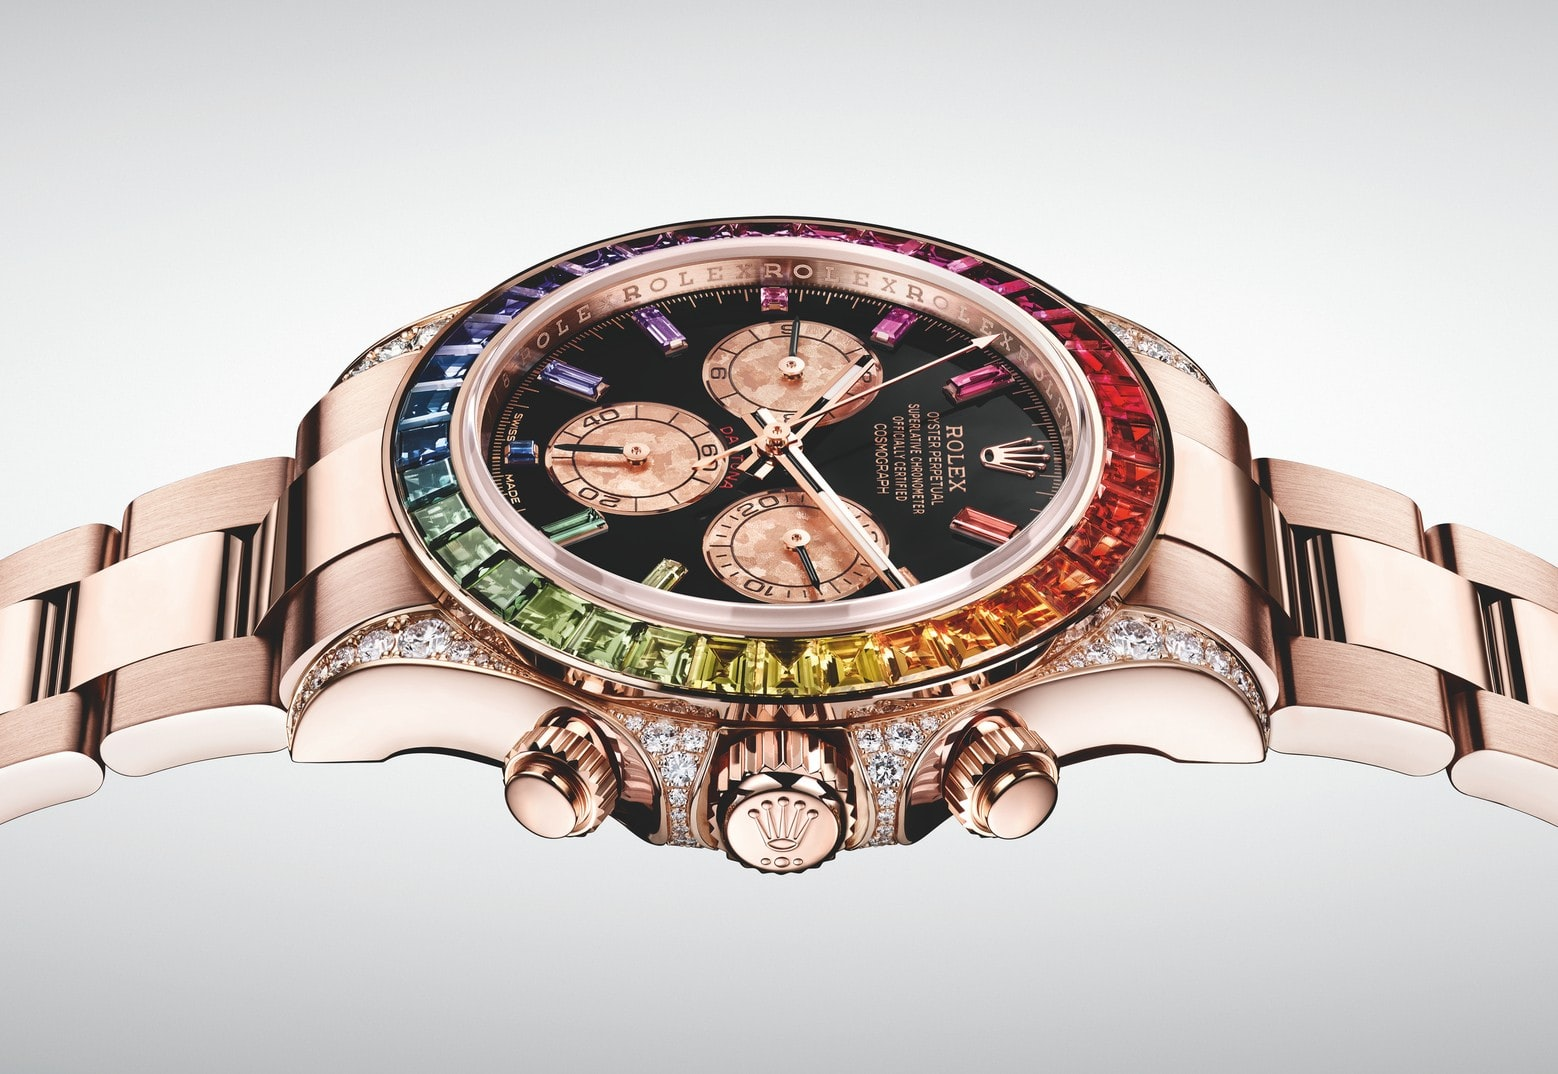 Introducing The Rolex Rainbow Daytona In Everose Gold Ref